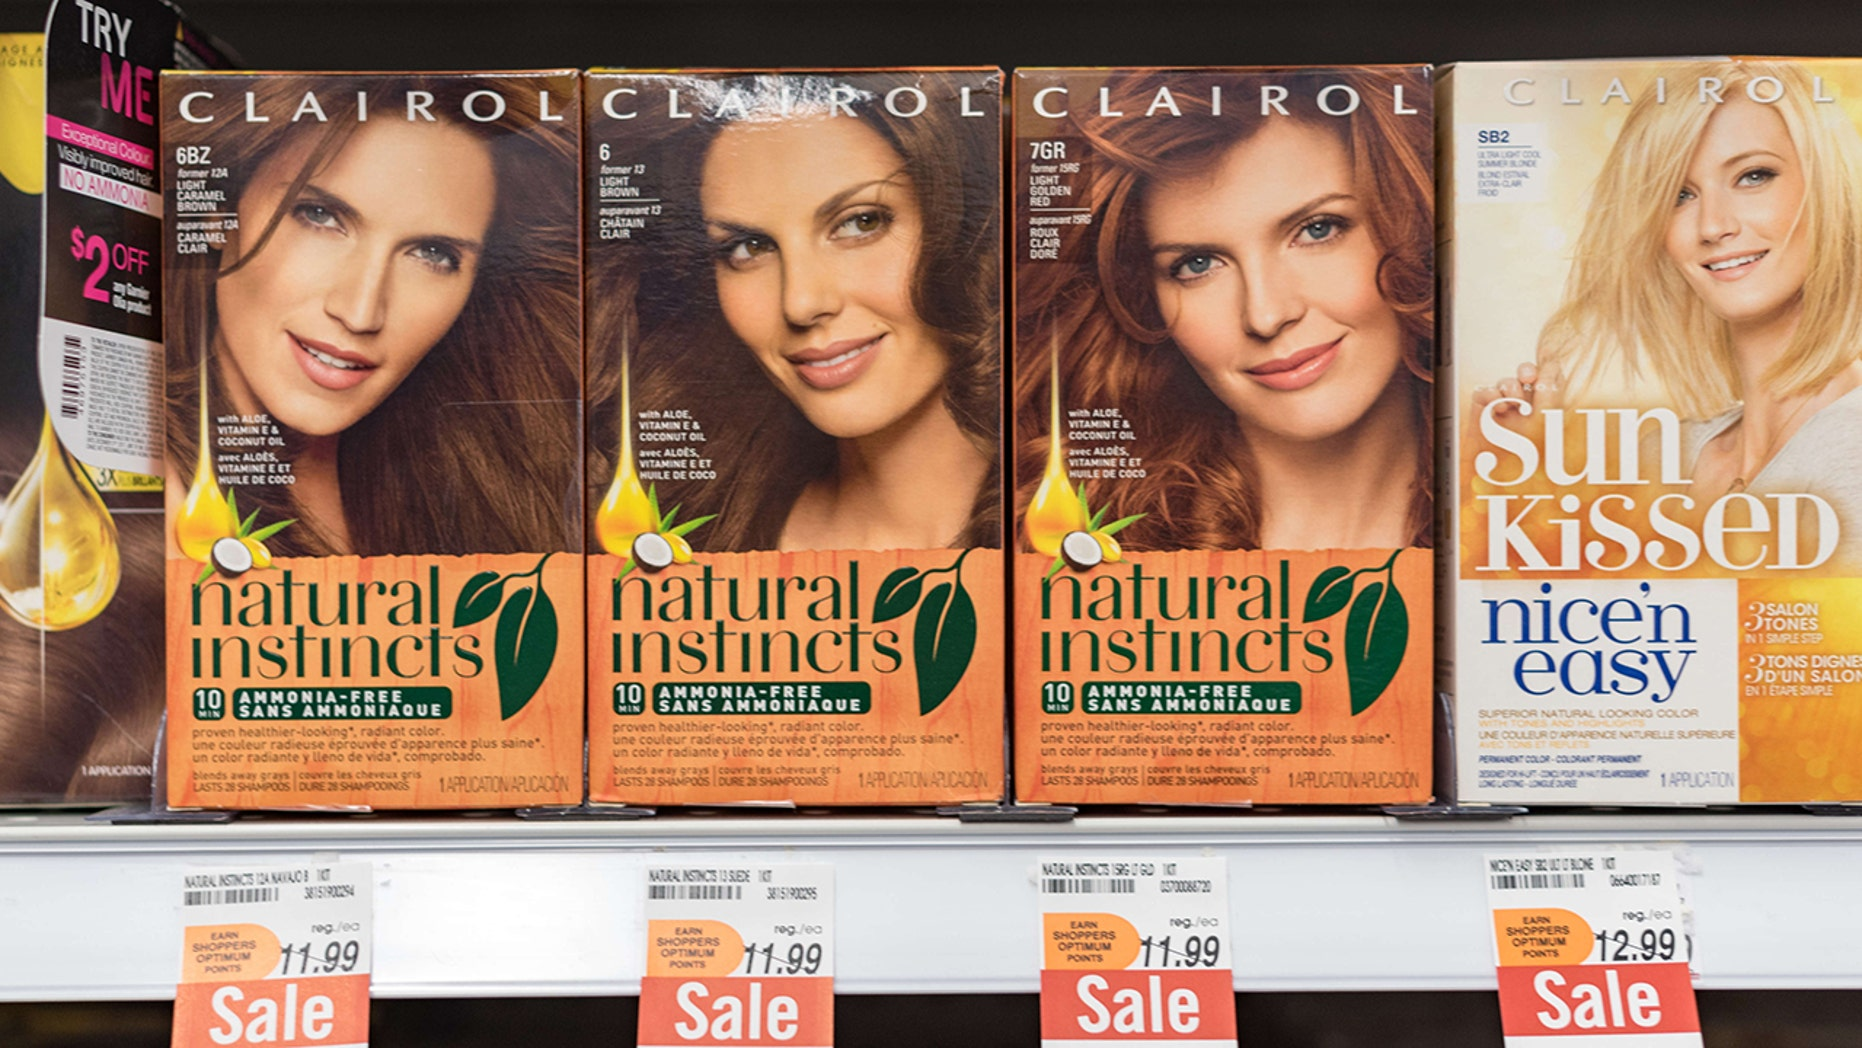 Clairol 'Natural Instincts' Hair Dye boxesaredpicture  in store shelf.